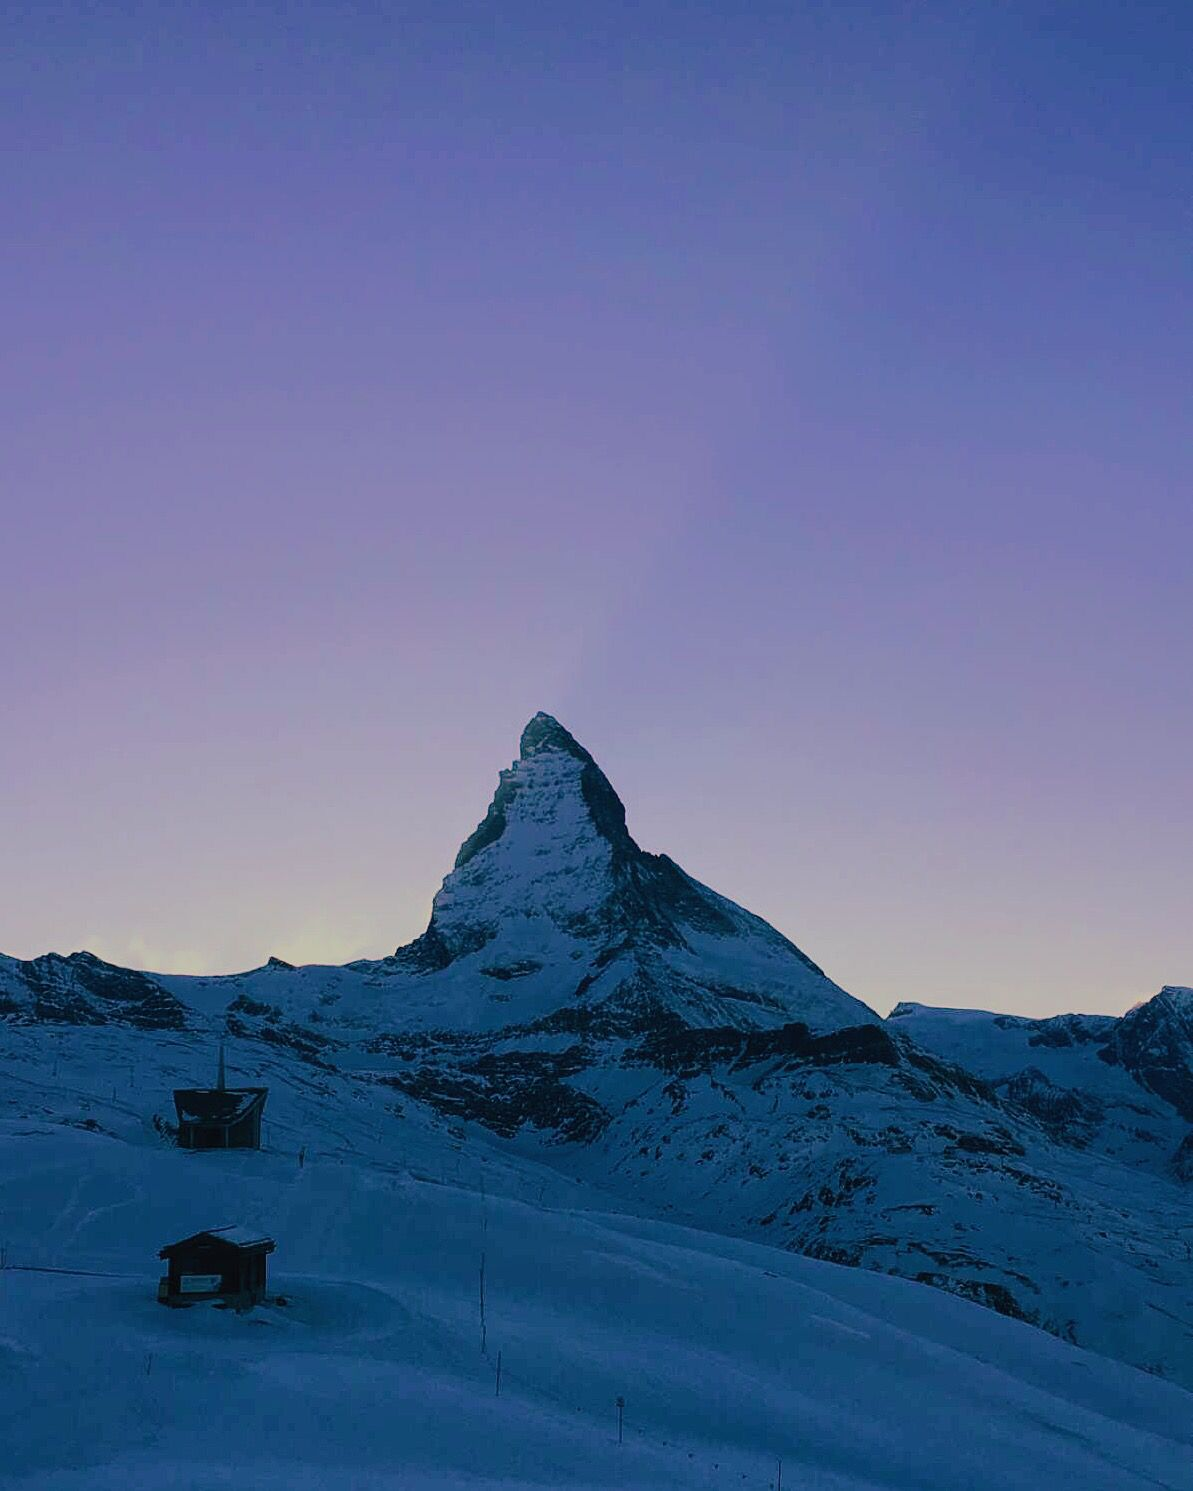 Sunset 21 February 2016 in Zermatt - Matterhorn by @gioja